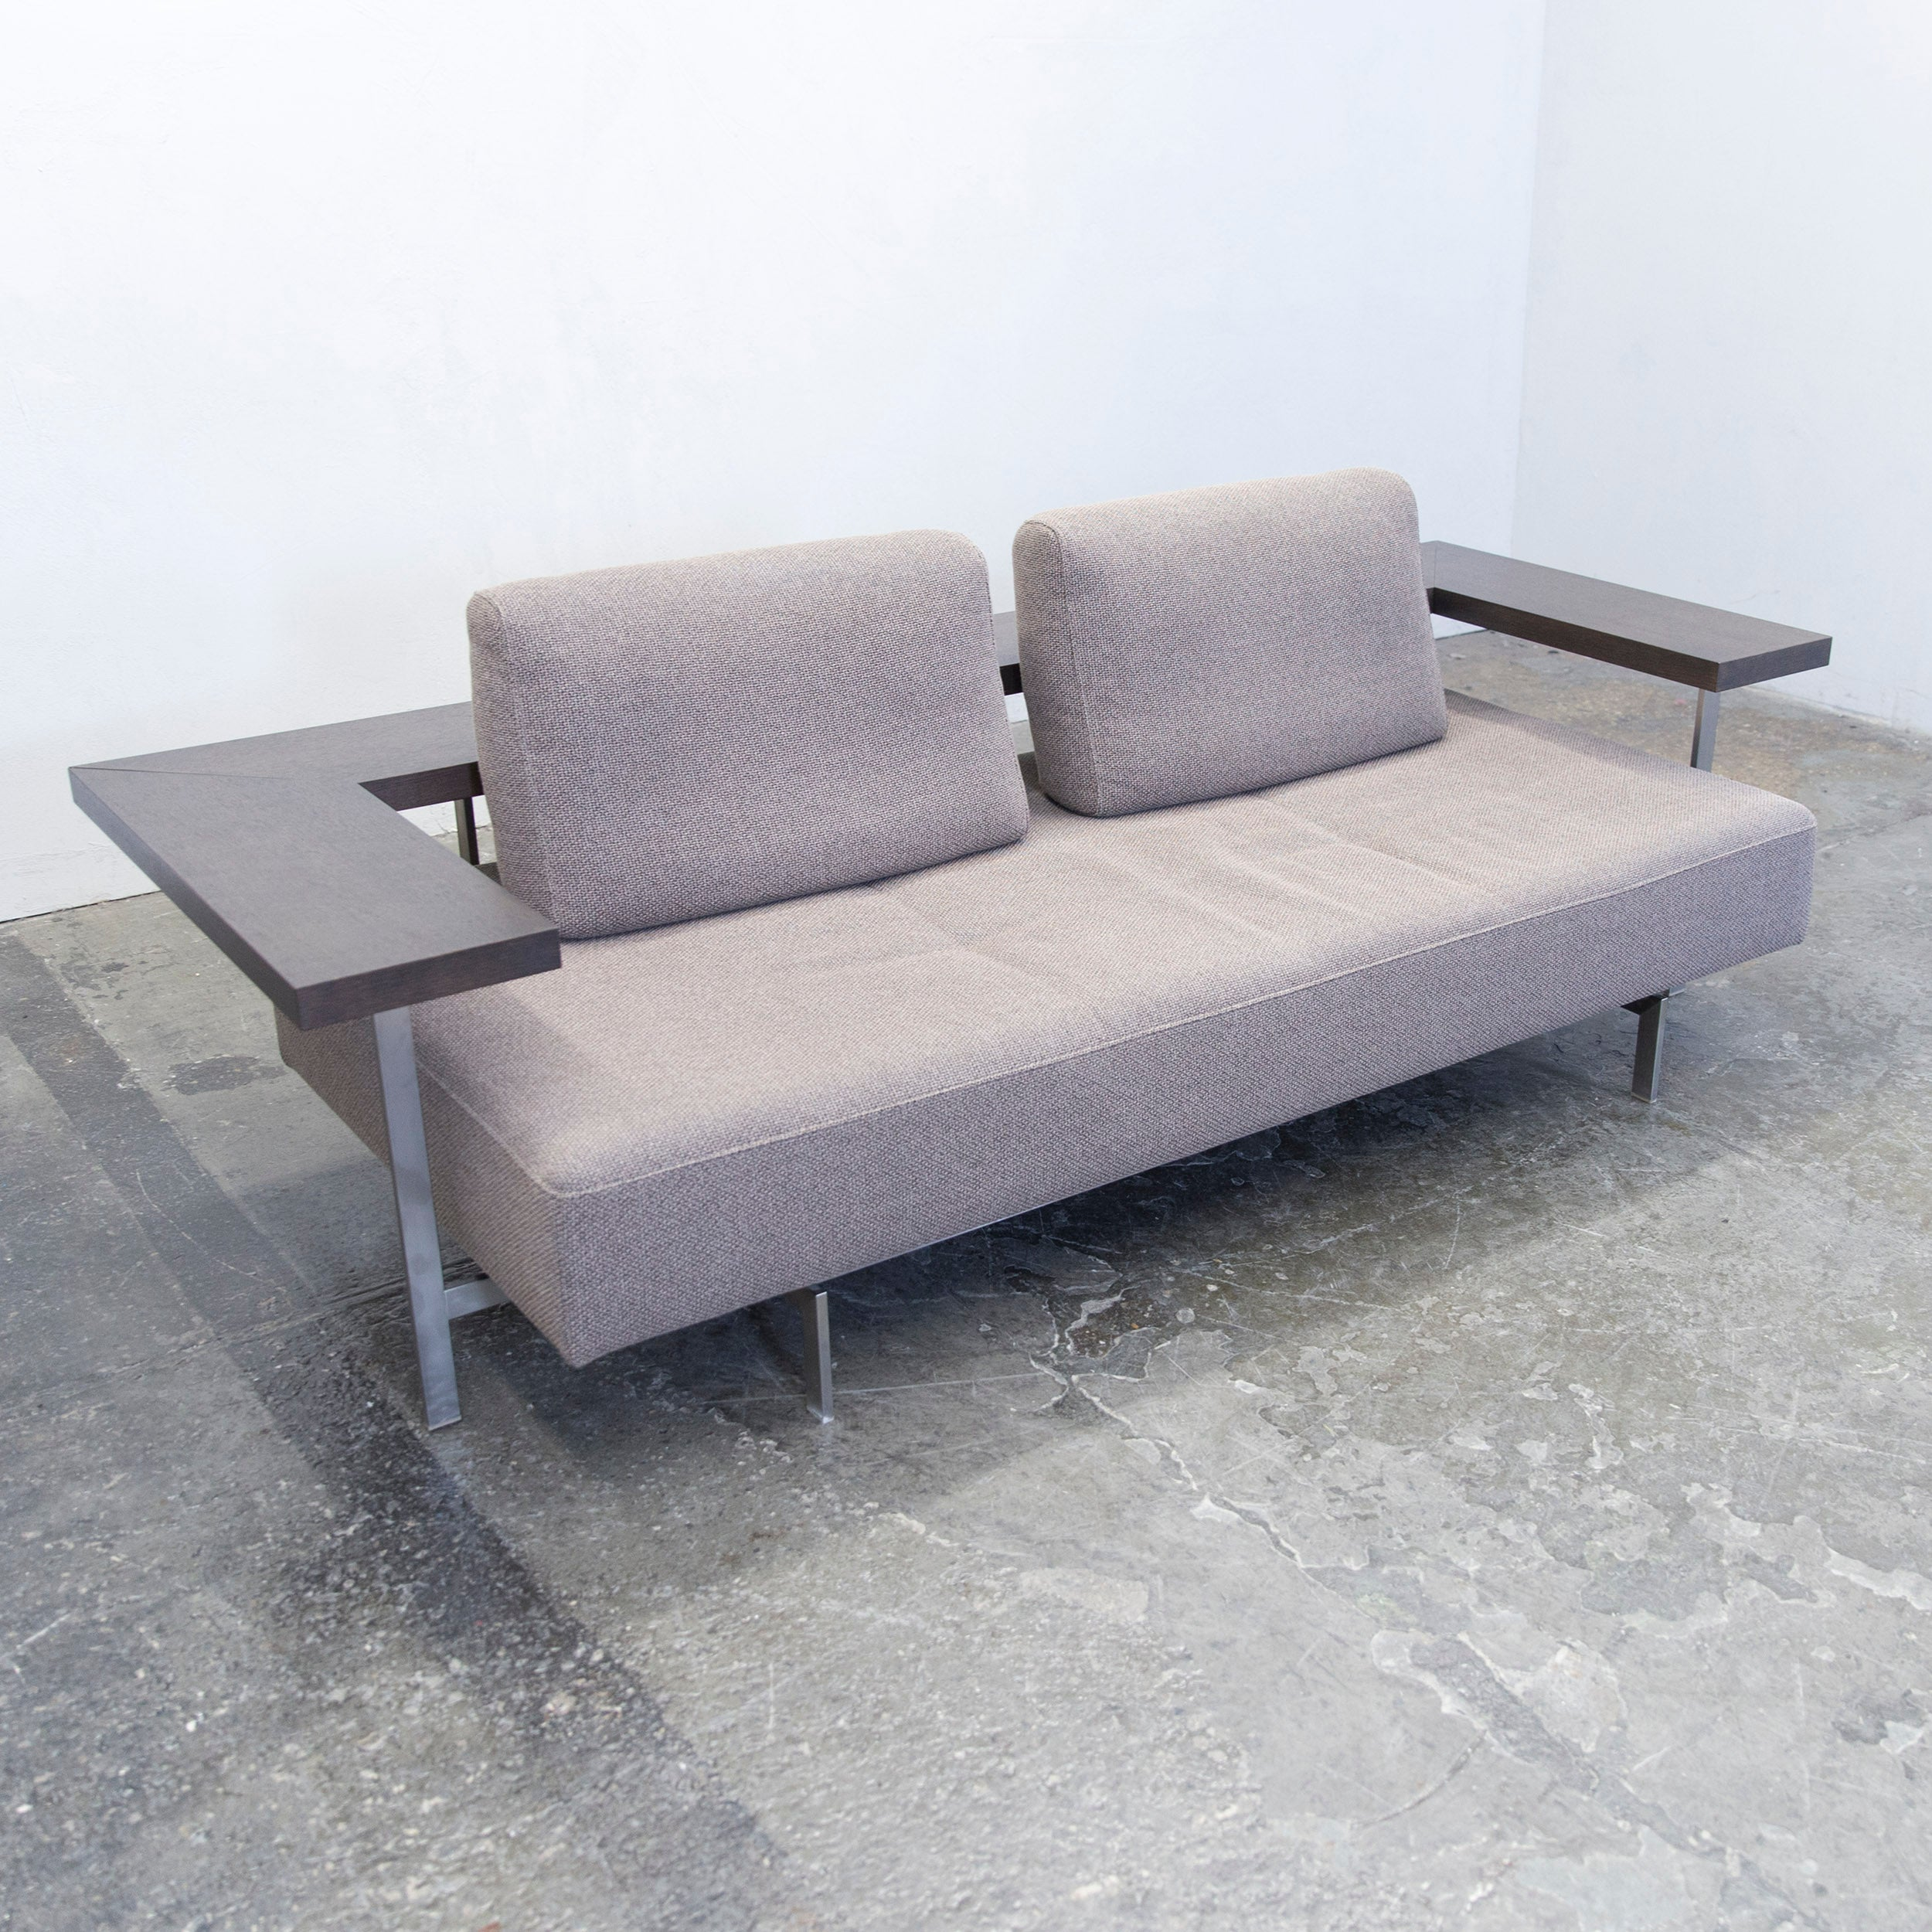 Sofa Couch Grau Designer Rolf Benz Dono 6100 Designer Sofa Set Grey Fabric Two Seat Couch Modern